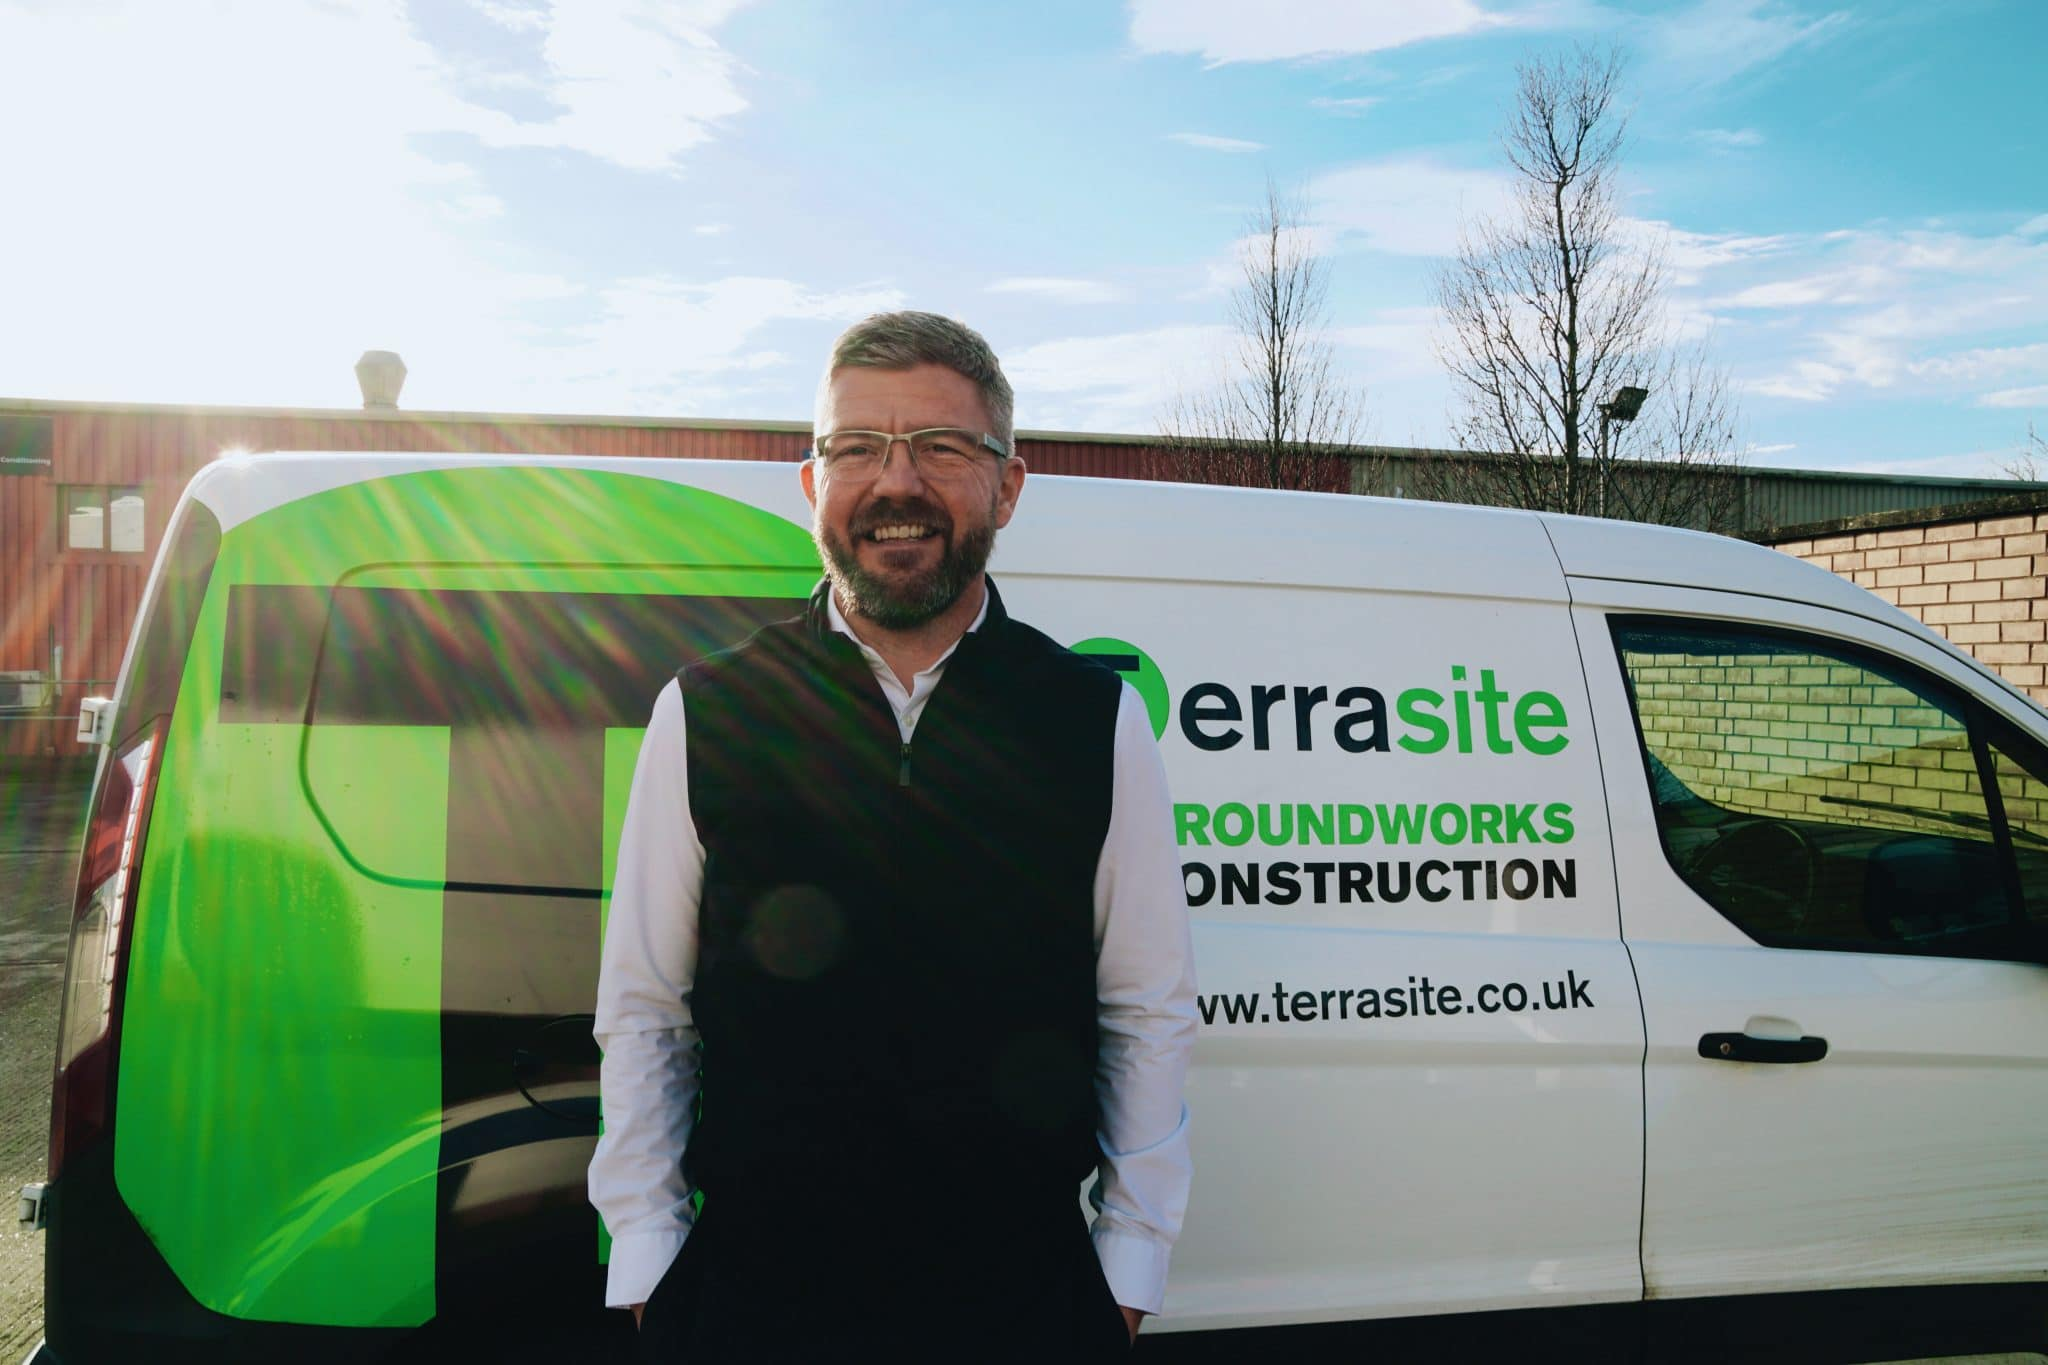 Expanding Terrasite moves to new premises in Ipswich